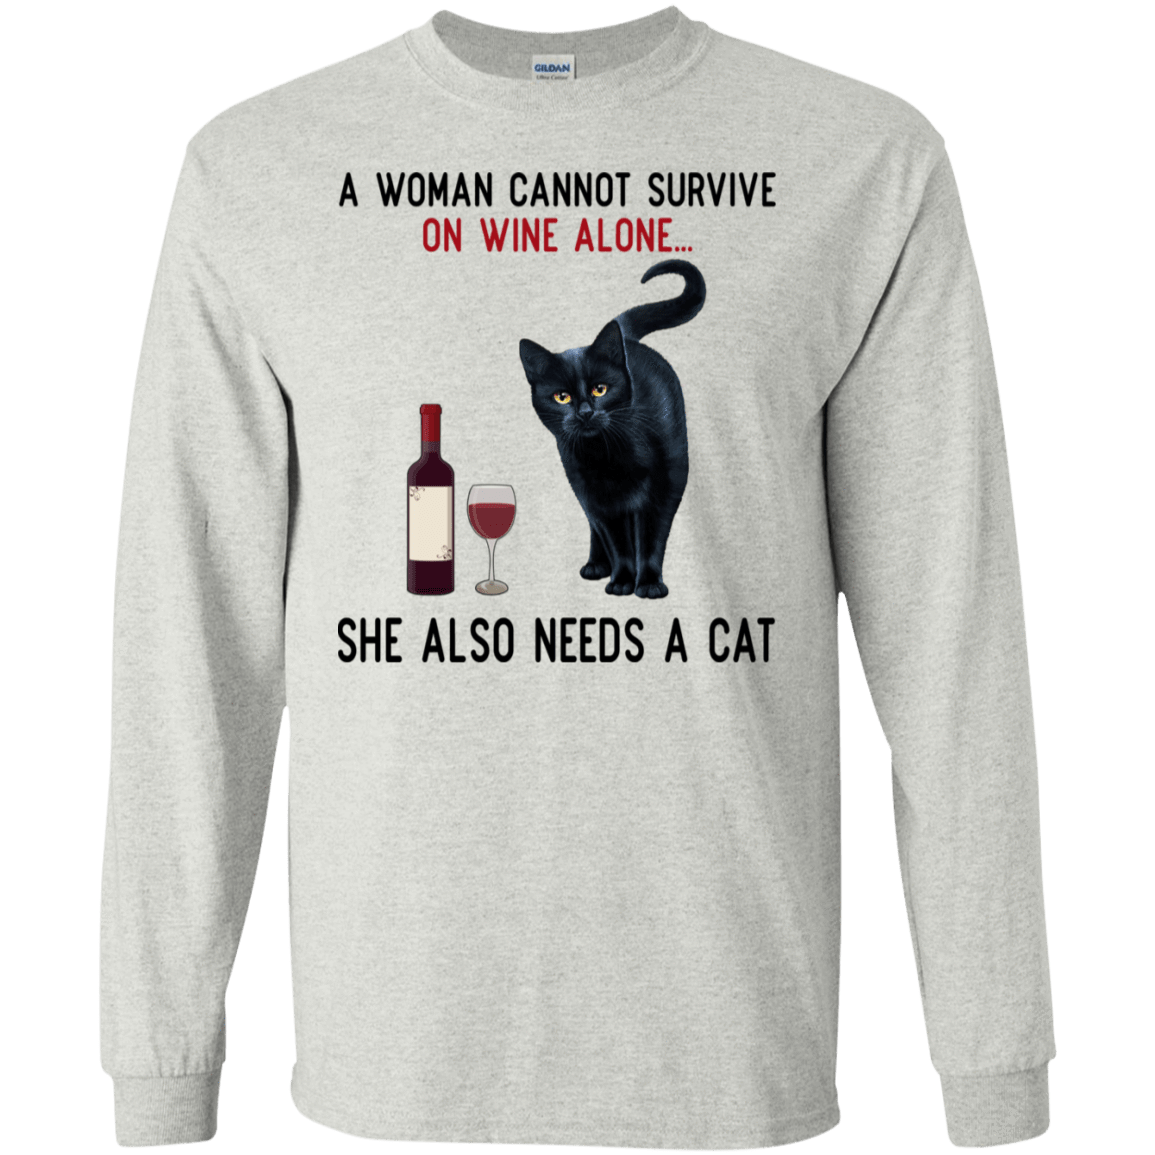 A Woman Cannot Survive On Wine Alone She Also Need A Cat T-Shirts, Hoodies 30-2112-77528897-10754 - Tee Ript